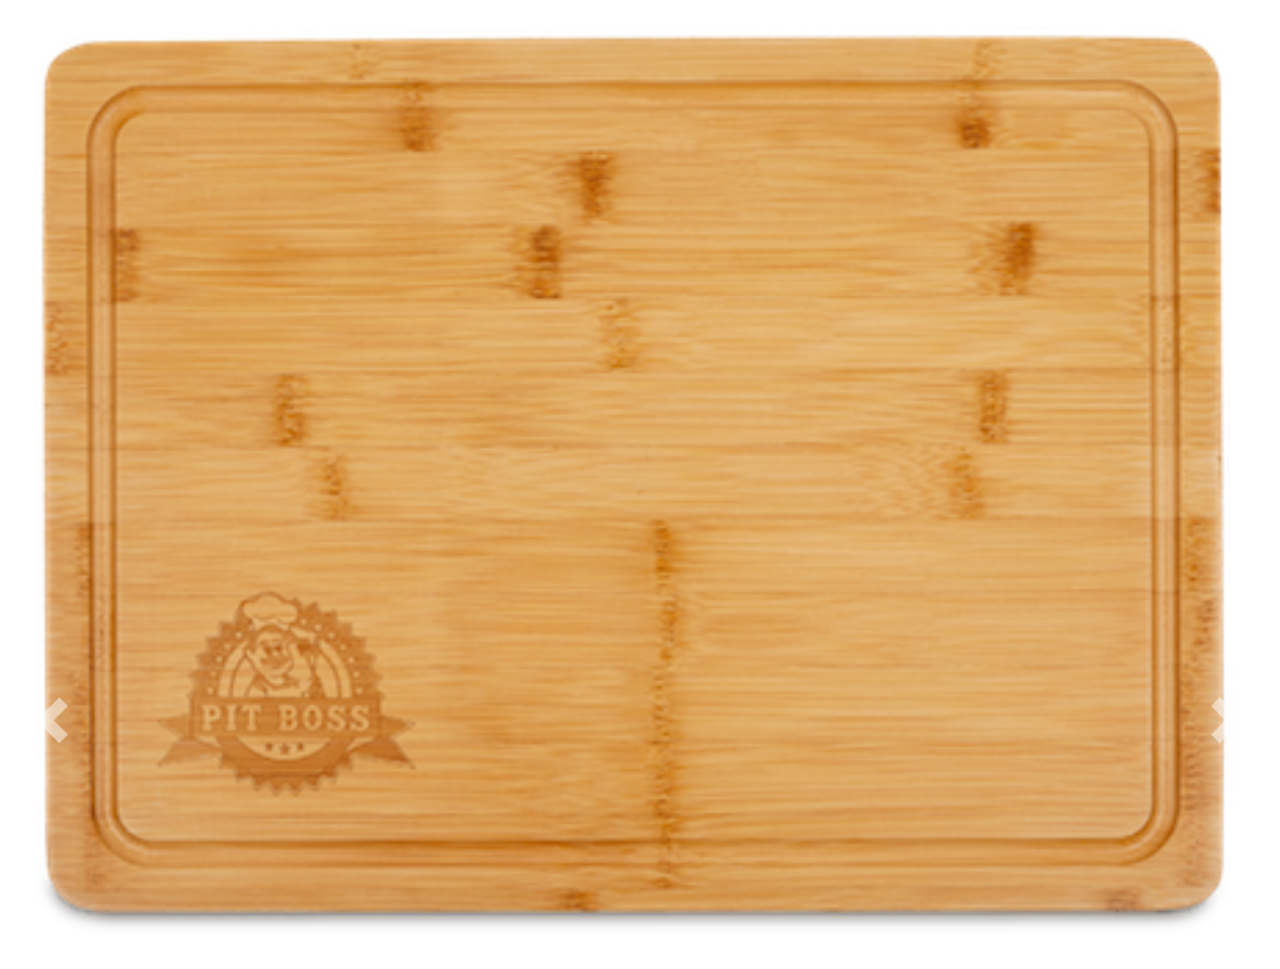 PIT BOSS GENUINE ACCESSORY - 67296 MAGNETIC CUTTING BOARD